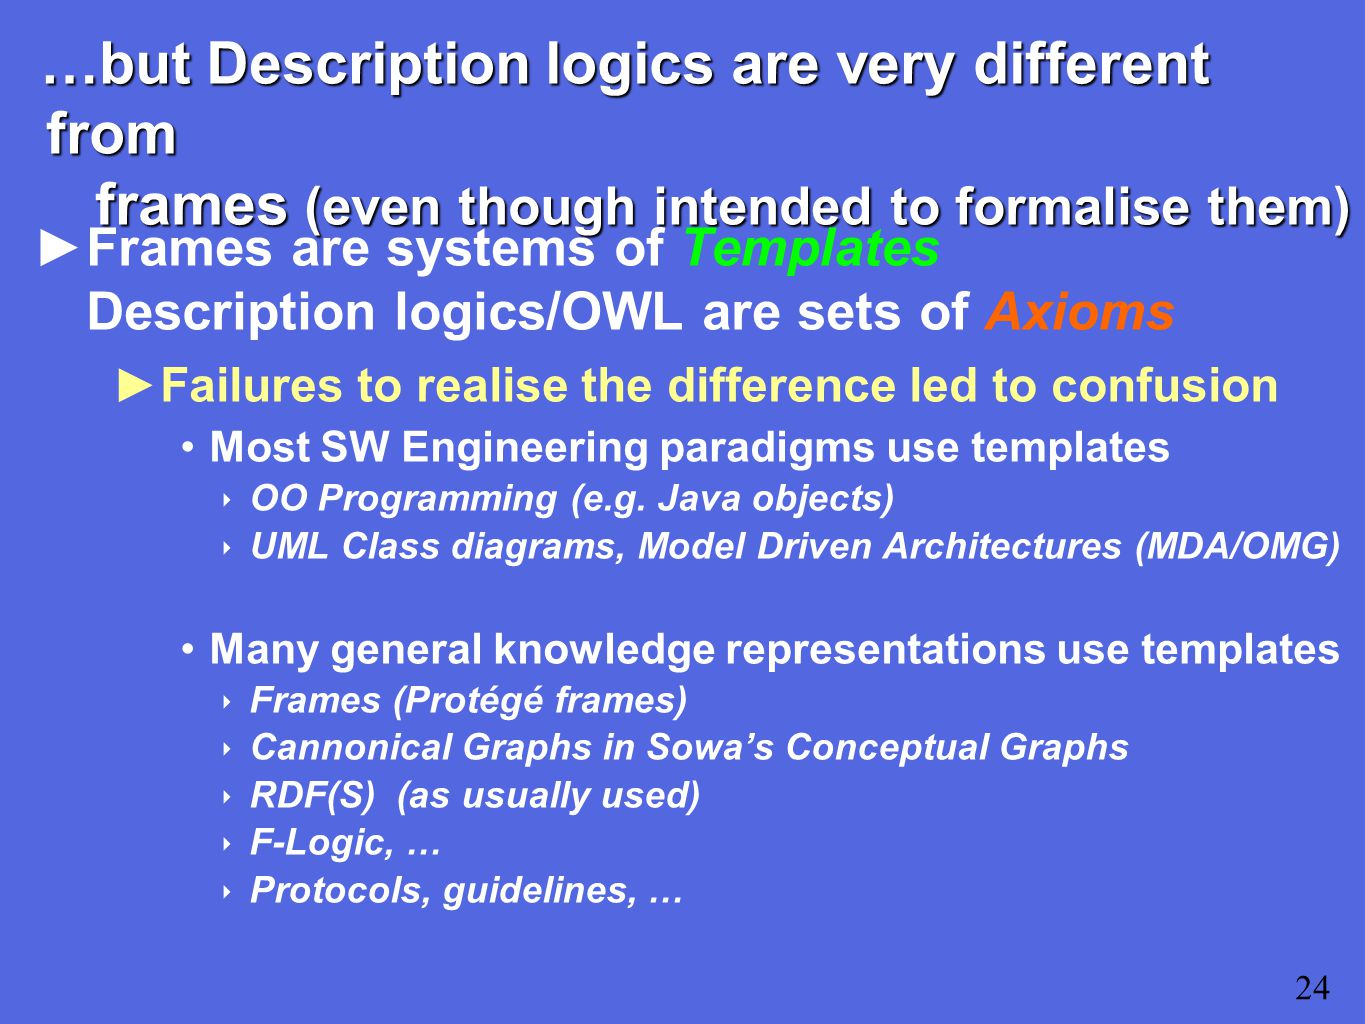 …but Description logics are very different from frames (even though intended to formalise them) ►Frames are systems of Templates Description logics/OWL are sets of Axioms ►Failures to realise the difference led to confusion Most SW Engineering paradigms use templates ‣ OO Programming (e.g.